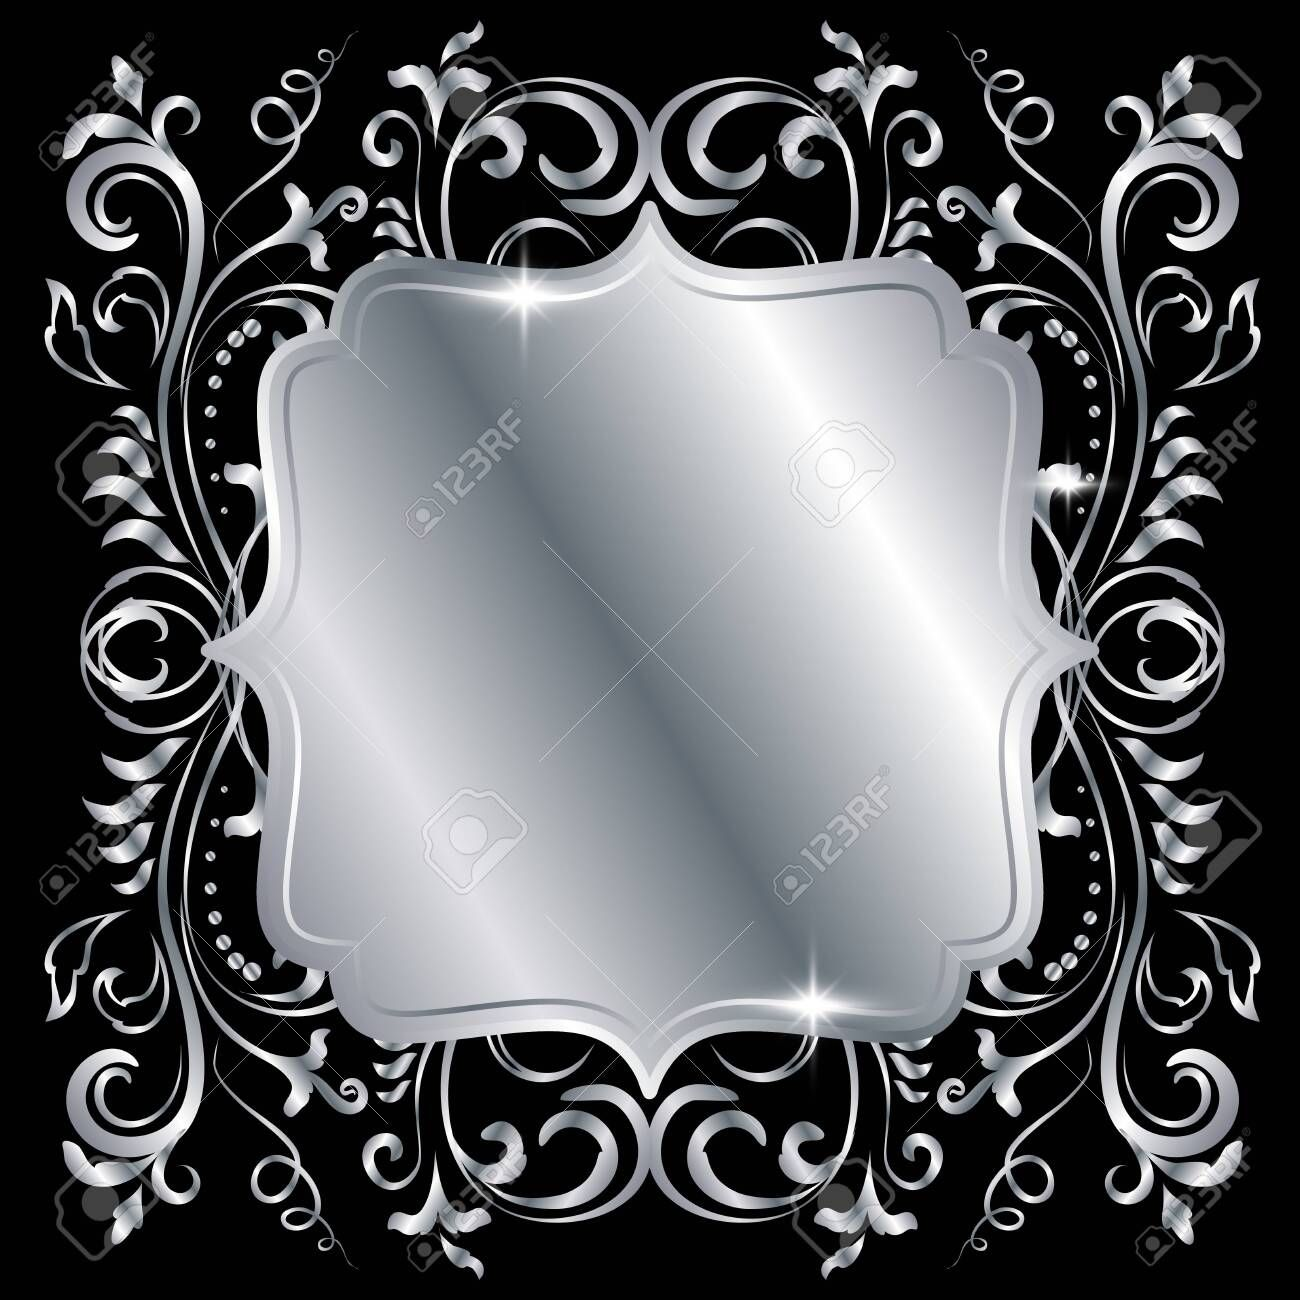 Silver Shiny Glowing Ornate Square Frame Isolated Over Black Metal Luxury Elegant Blank Border Vector Backgroun Square Frames Vector Design Vector Background